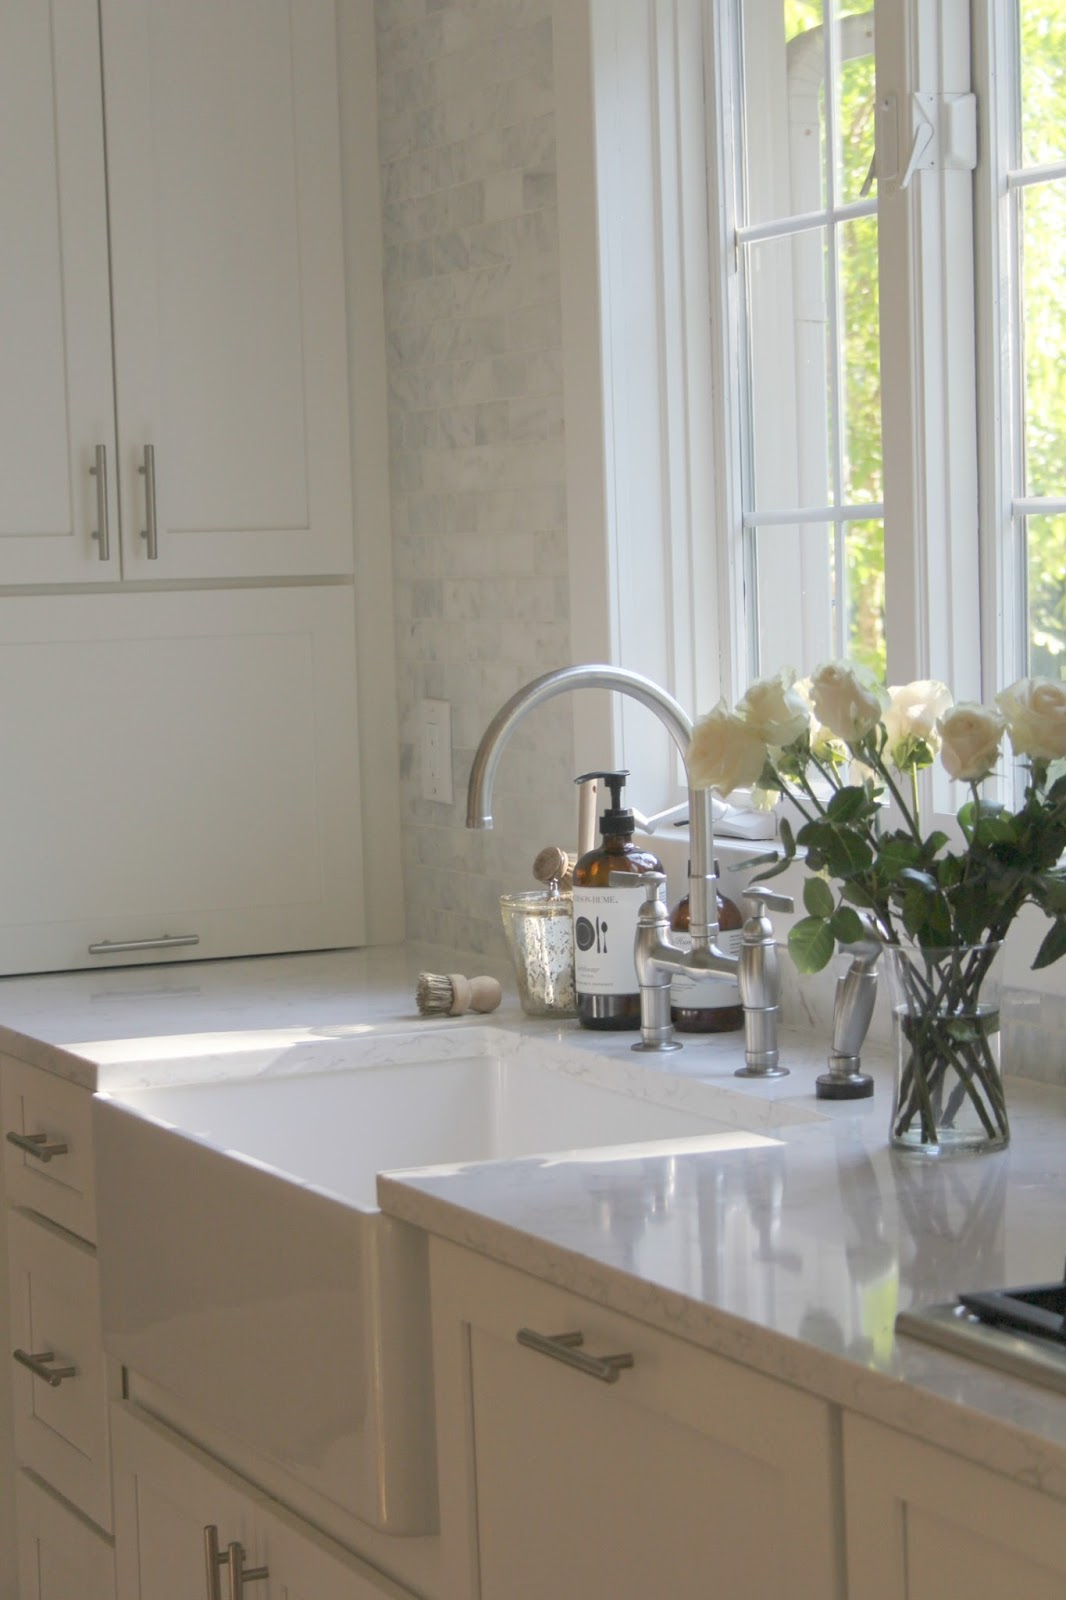 How to Choose the Right White Quartz for Kitchen Countertops – o White Granite For Kitchen Countertop Ideas Html on white refrigerator kitchen ideas, counter top kitchen ideas, white cabinets kitchen ideas, white appliances kitchen ideas,